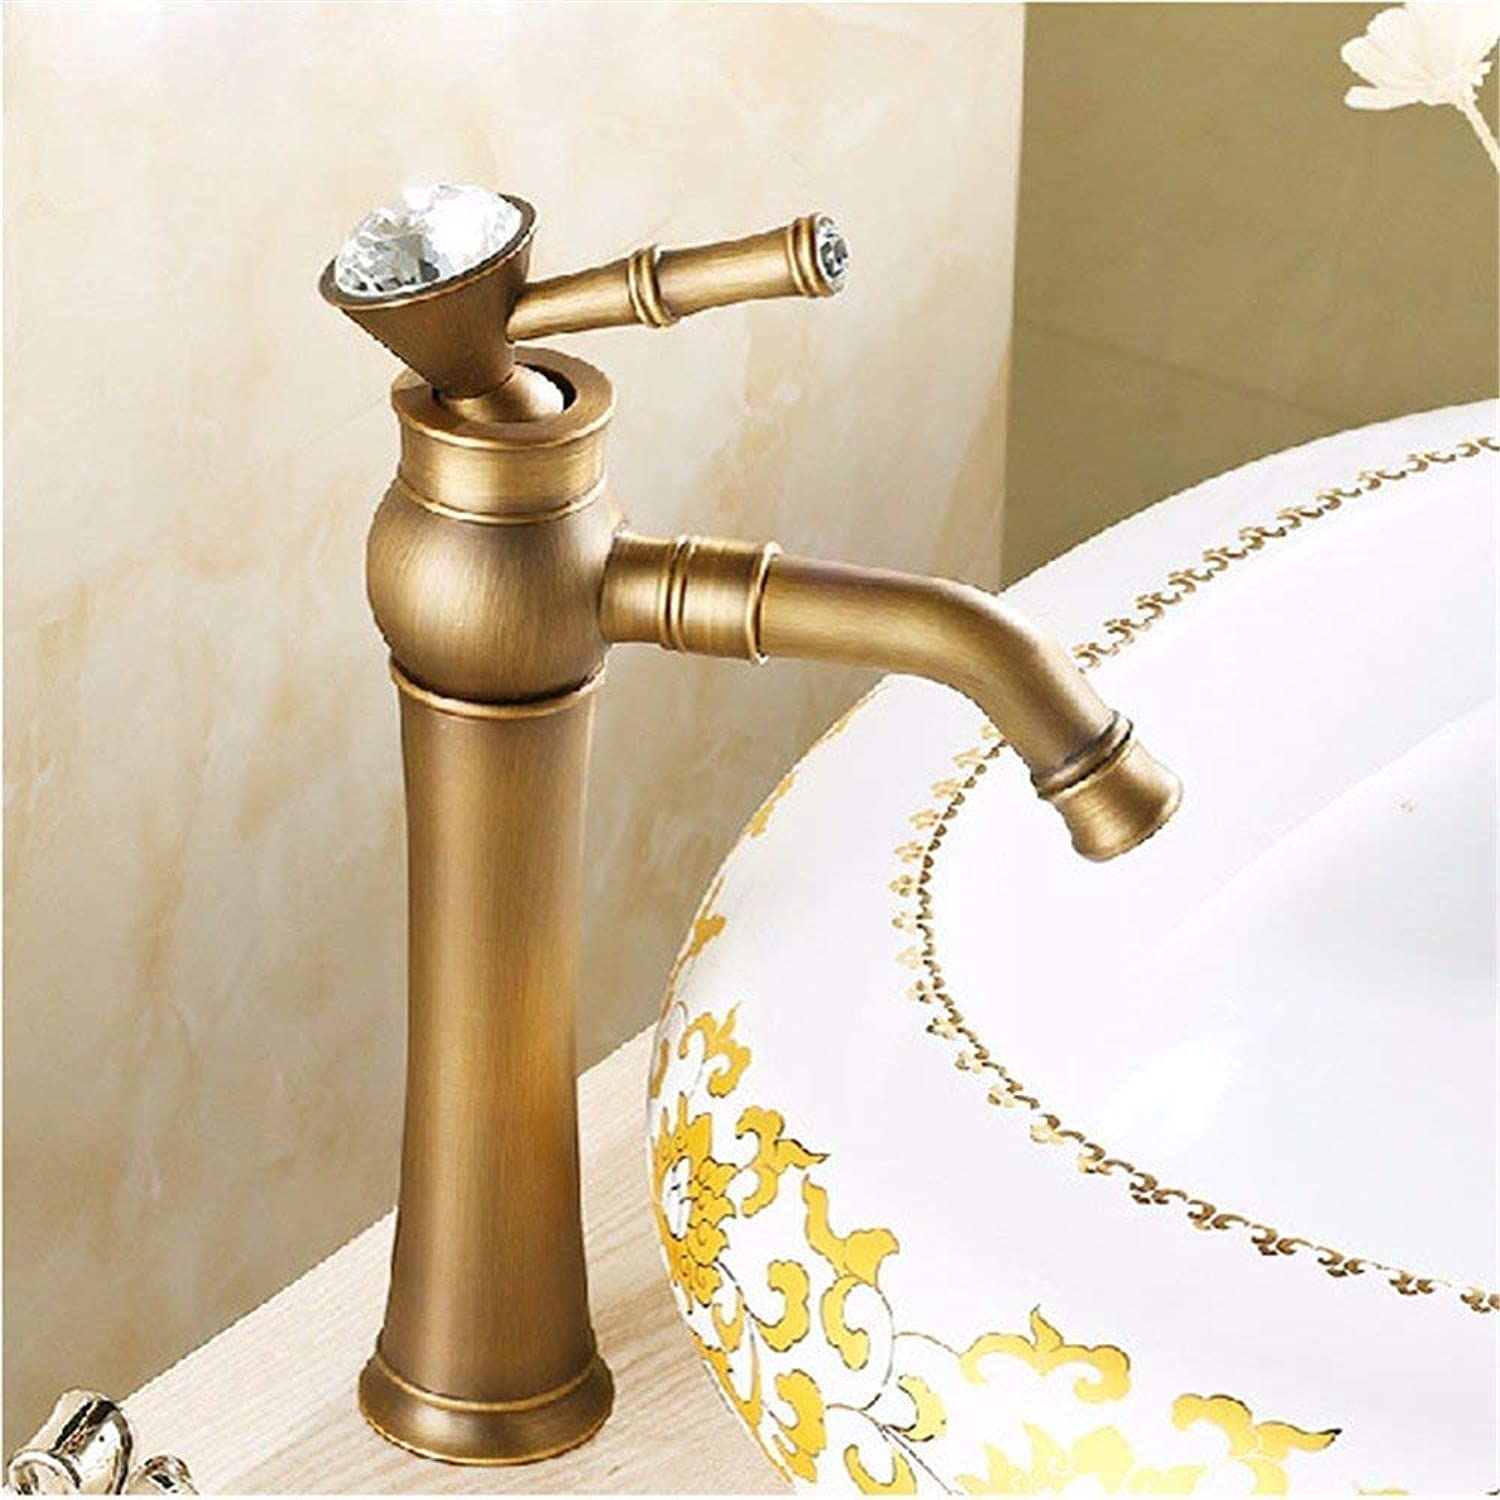 360° redating Faucet Retro Faucetvintage Basin Above Counter Basin Single Hole, Hot and Cold Water